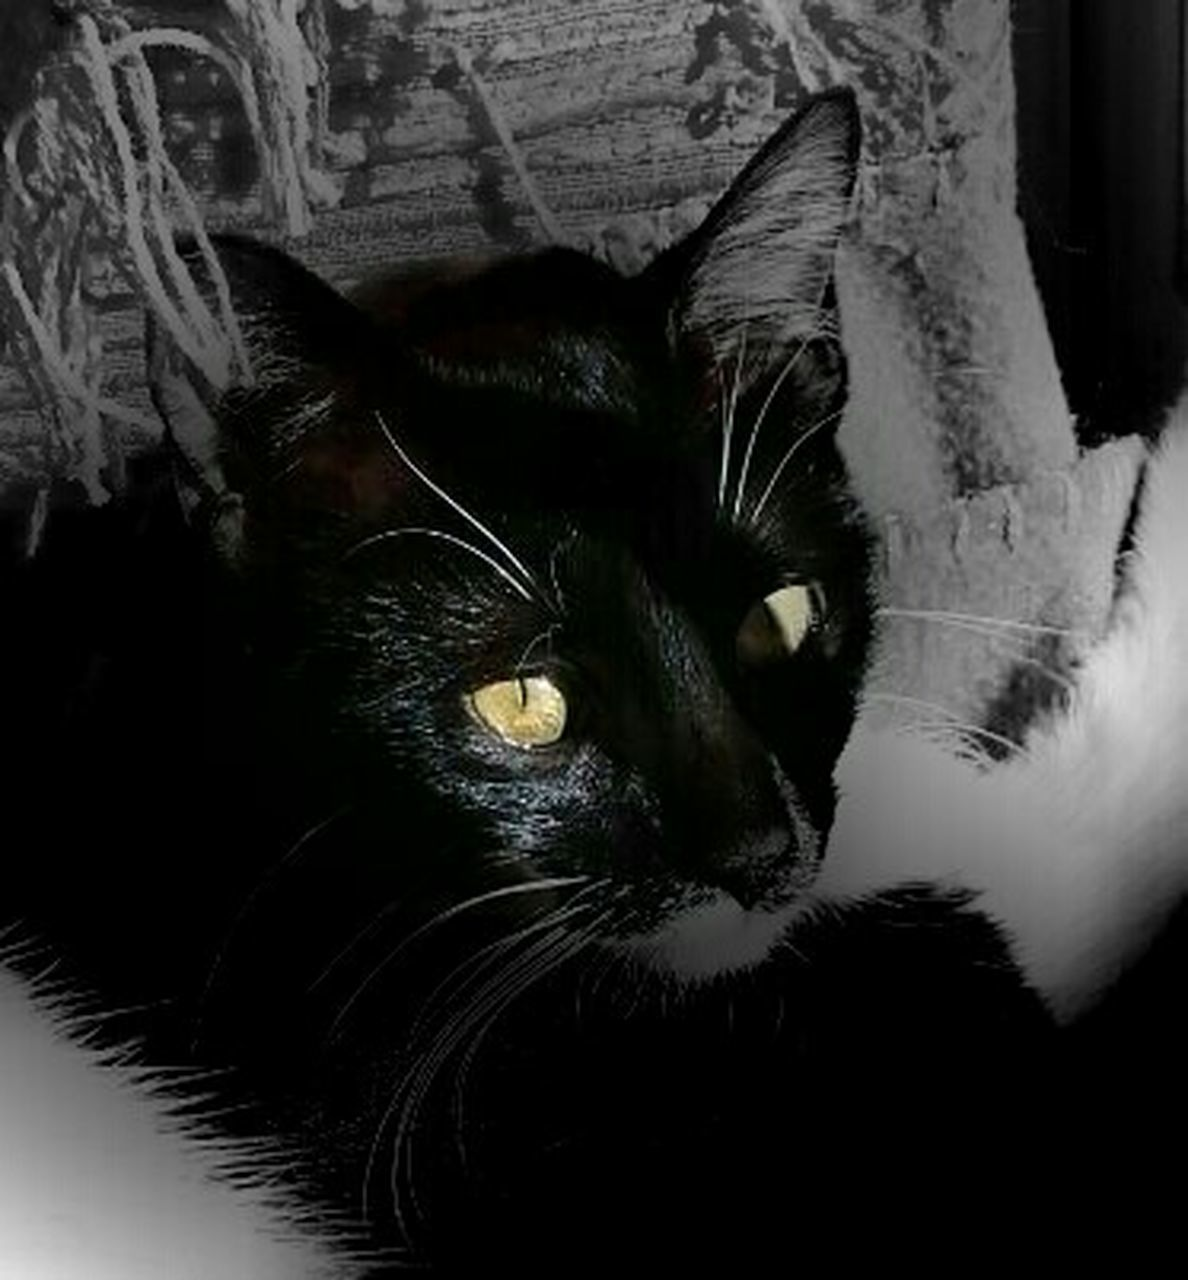 domestic cat, feline, domestic animals, one animal, pets, animal themes, whisker, black color, indoors, looking at camera, portrait, mammal, no people, close-up, yellow eyes, day